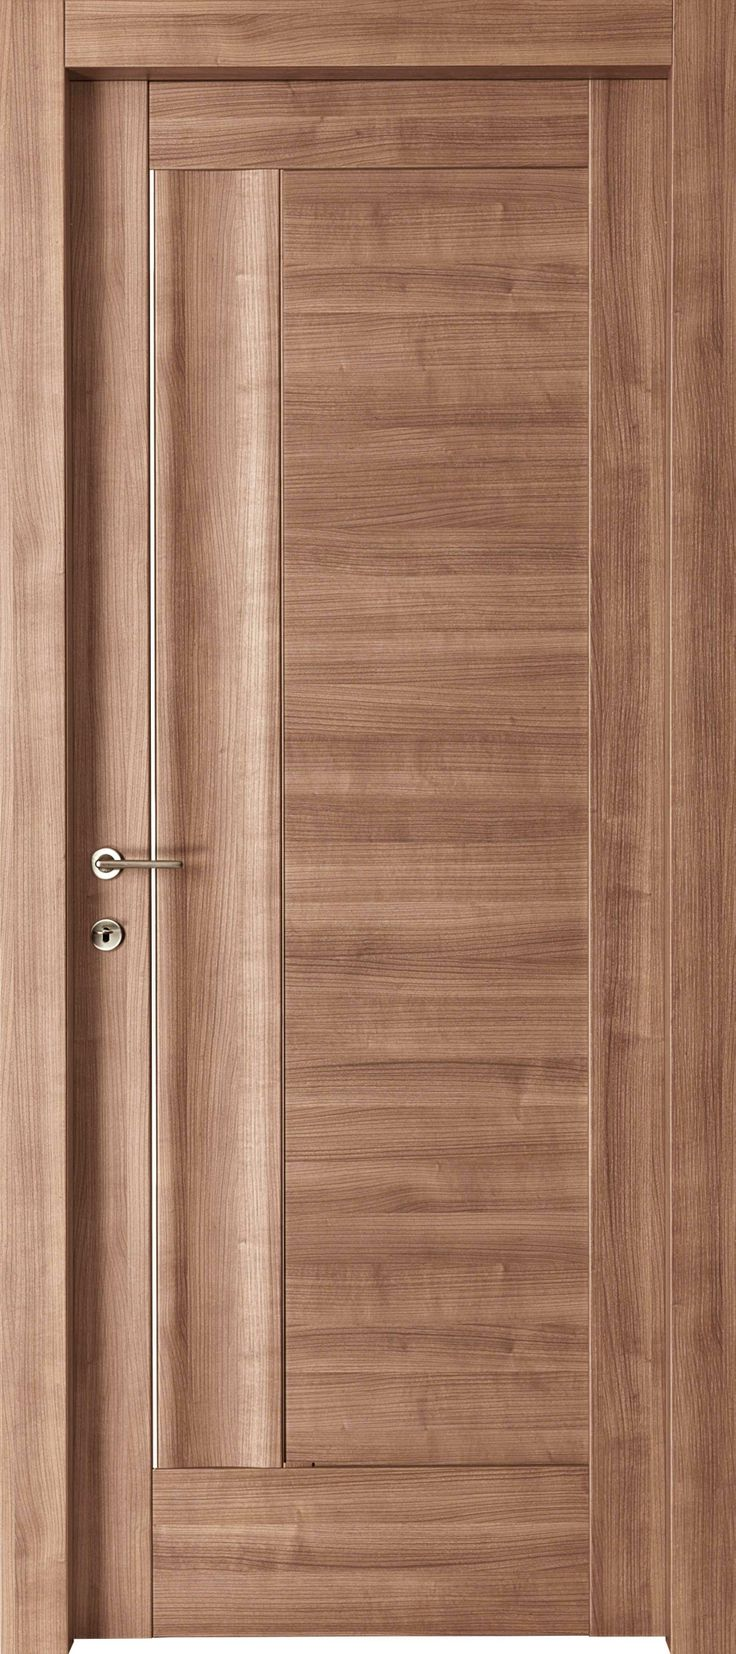 Doors furniture 6 panel solid wood door for Wooden door ideas